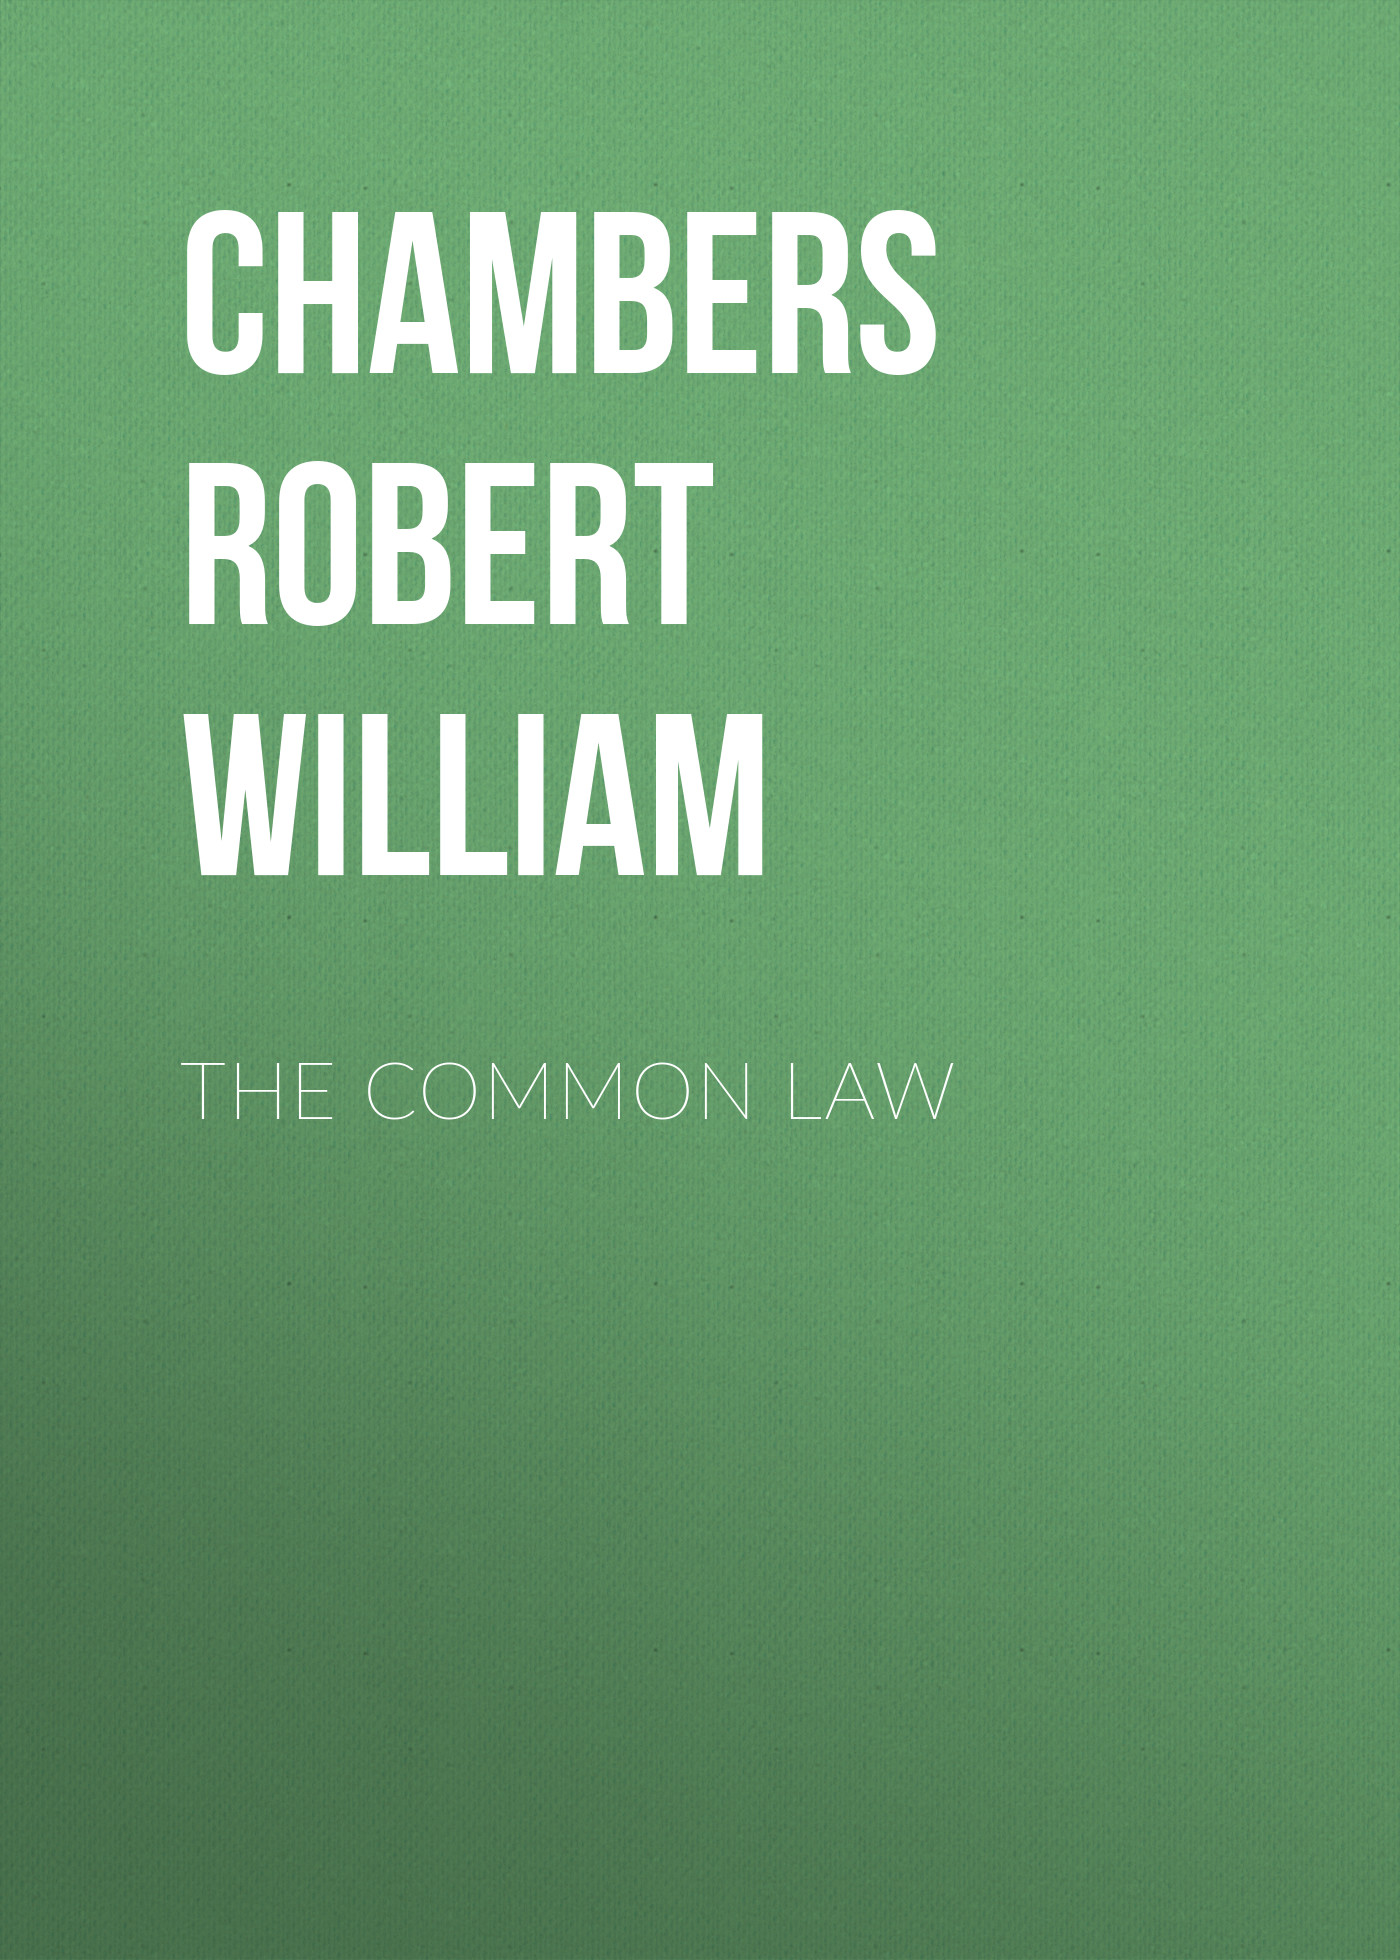 купить Chambers Robert William The Common Law в интернет-магазине